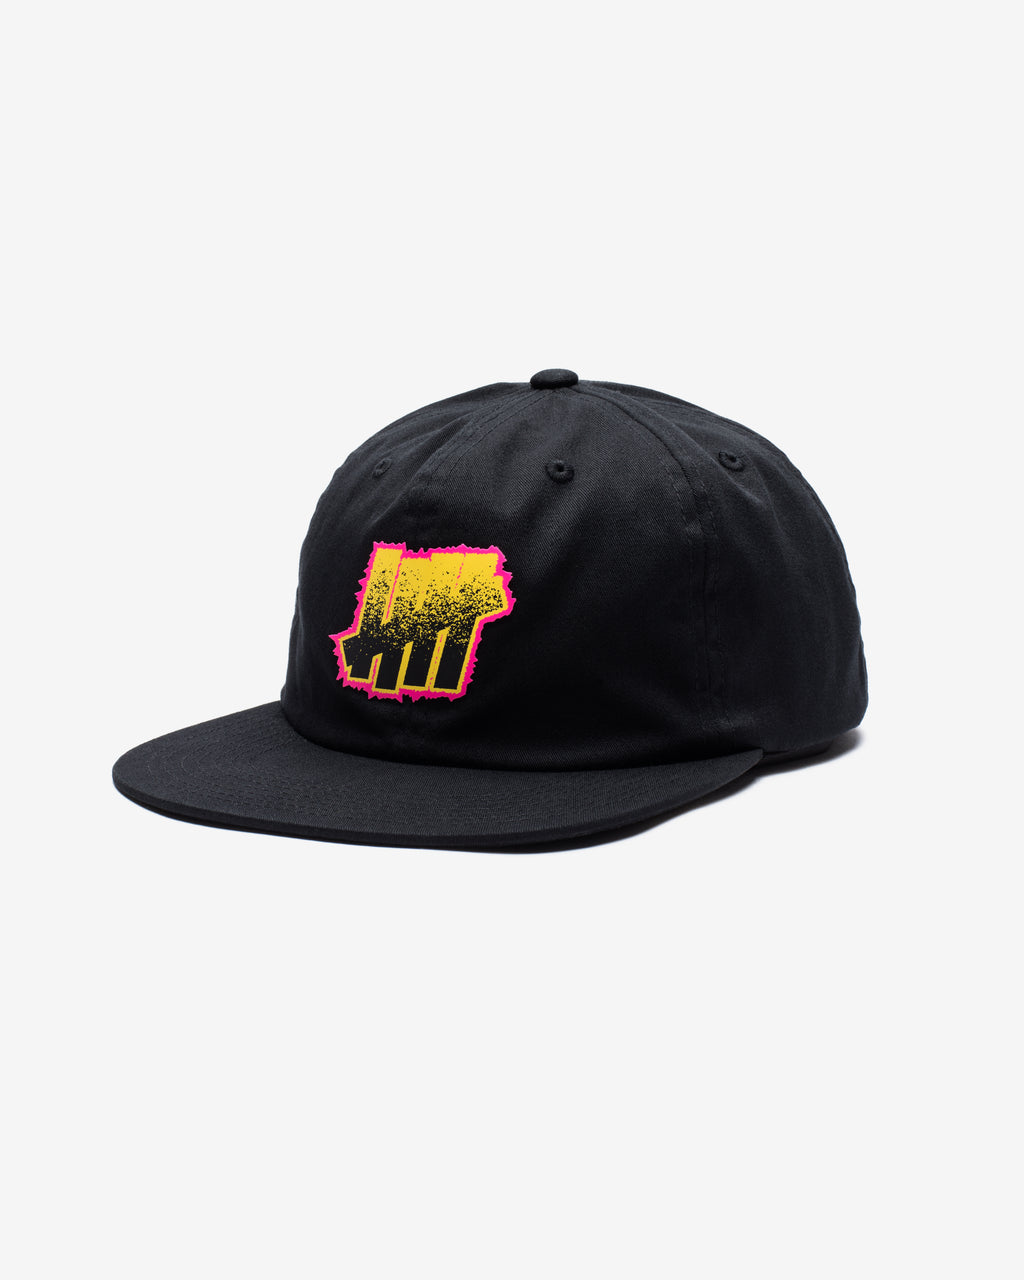 UNDEFEATED ZAPPED ICON SNAPBACK - BLACK